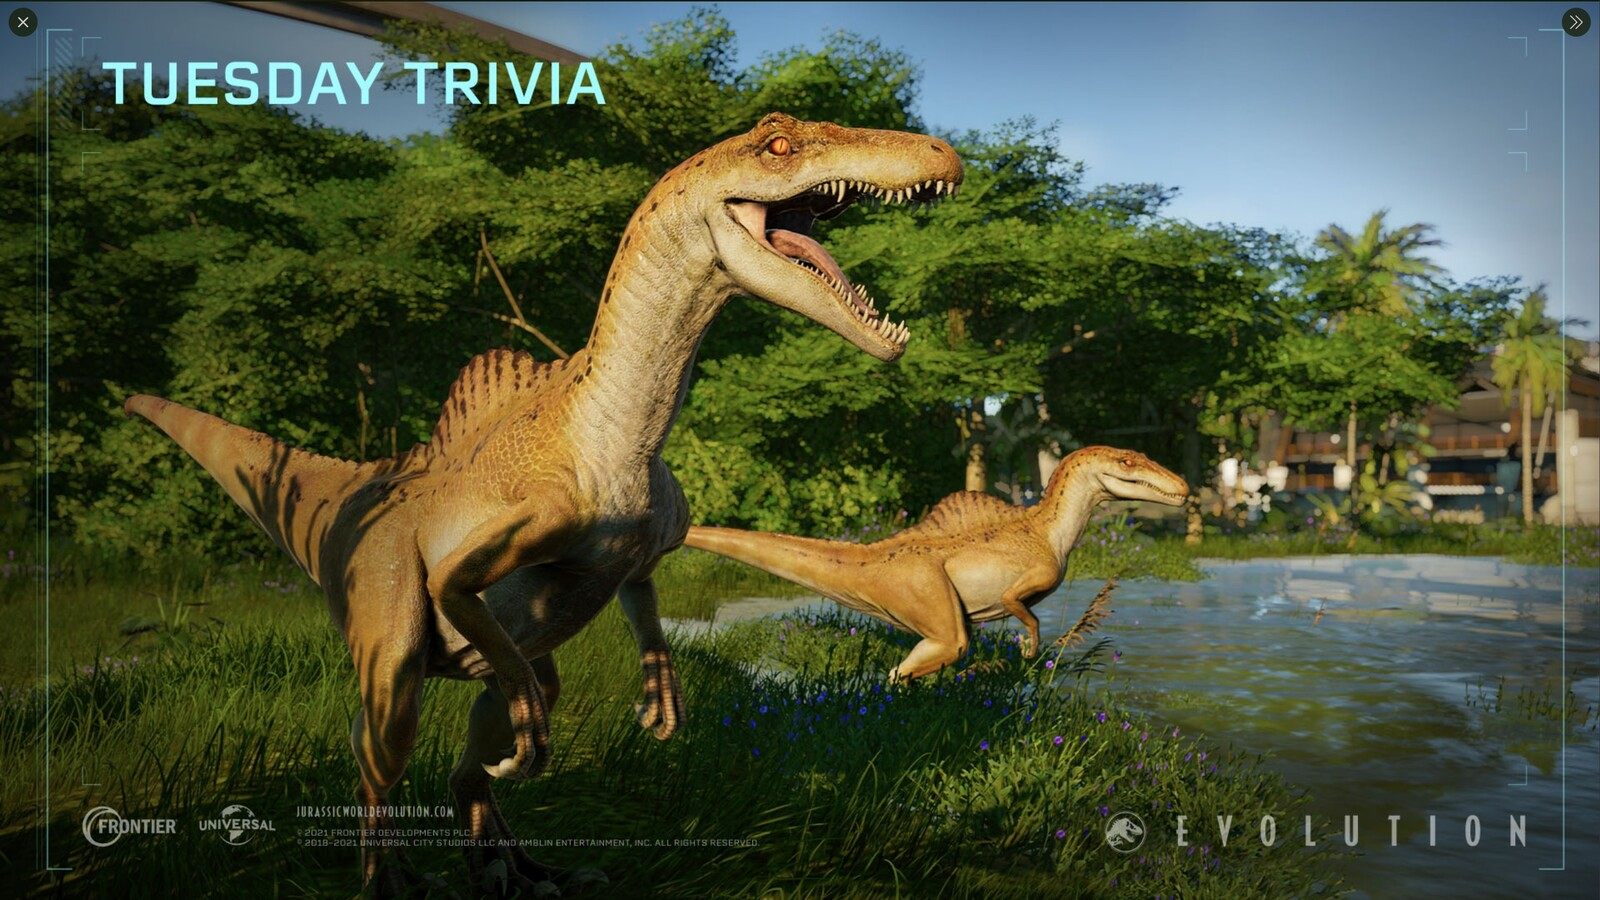 Jurassic World Evolution - Tuesday Trivia Spinoraptor